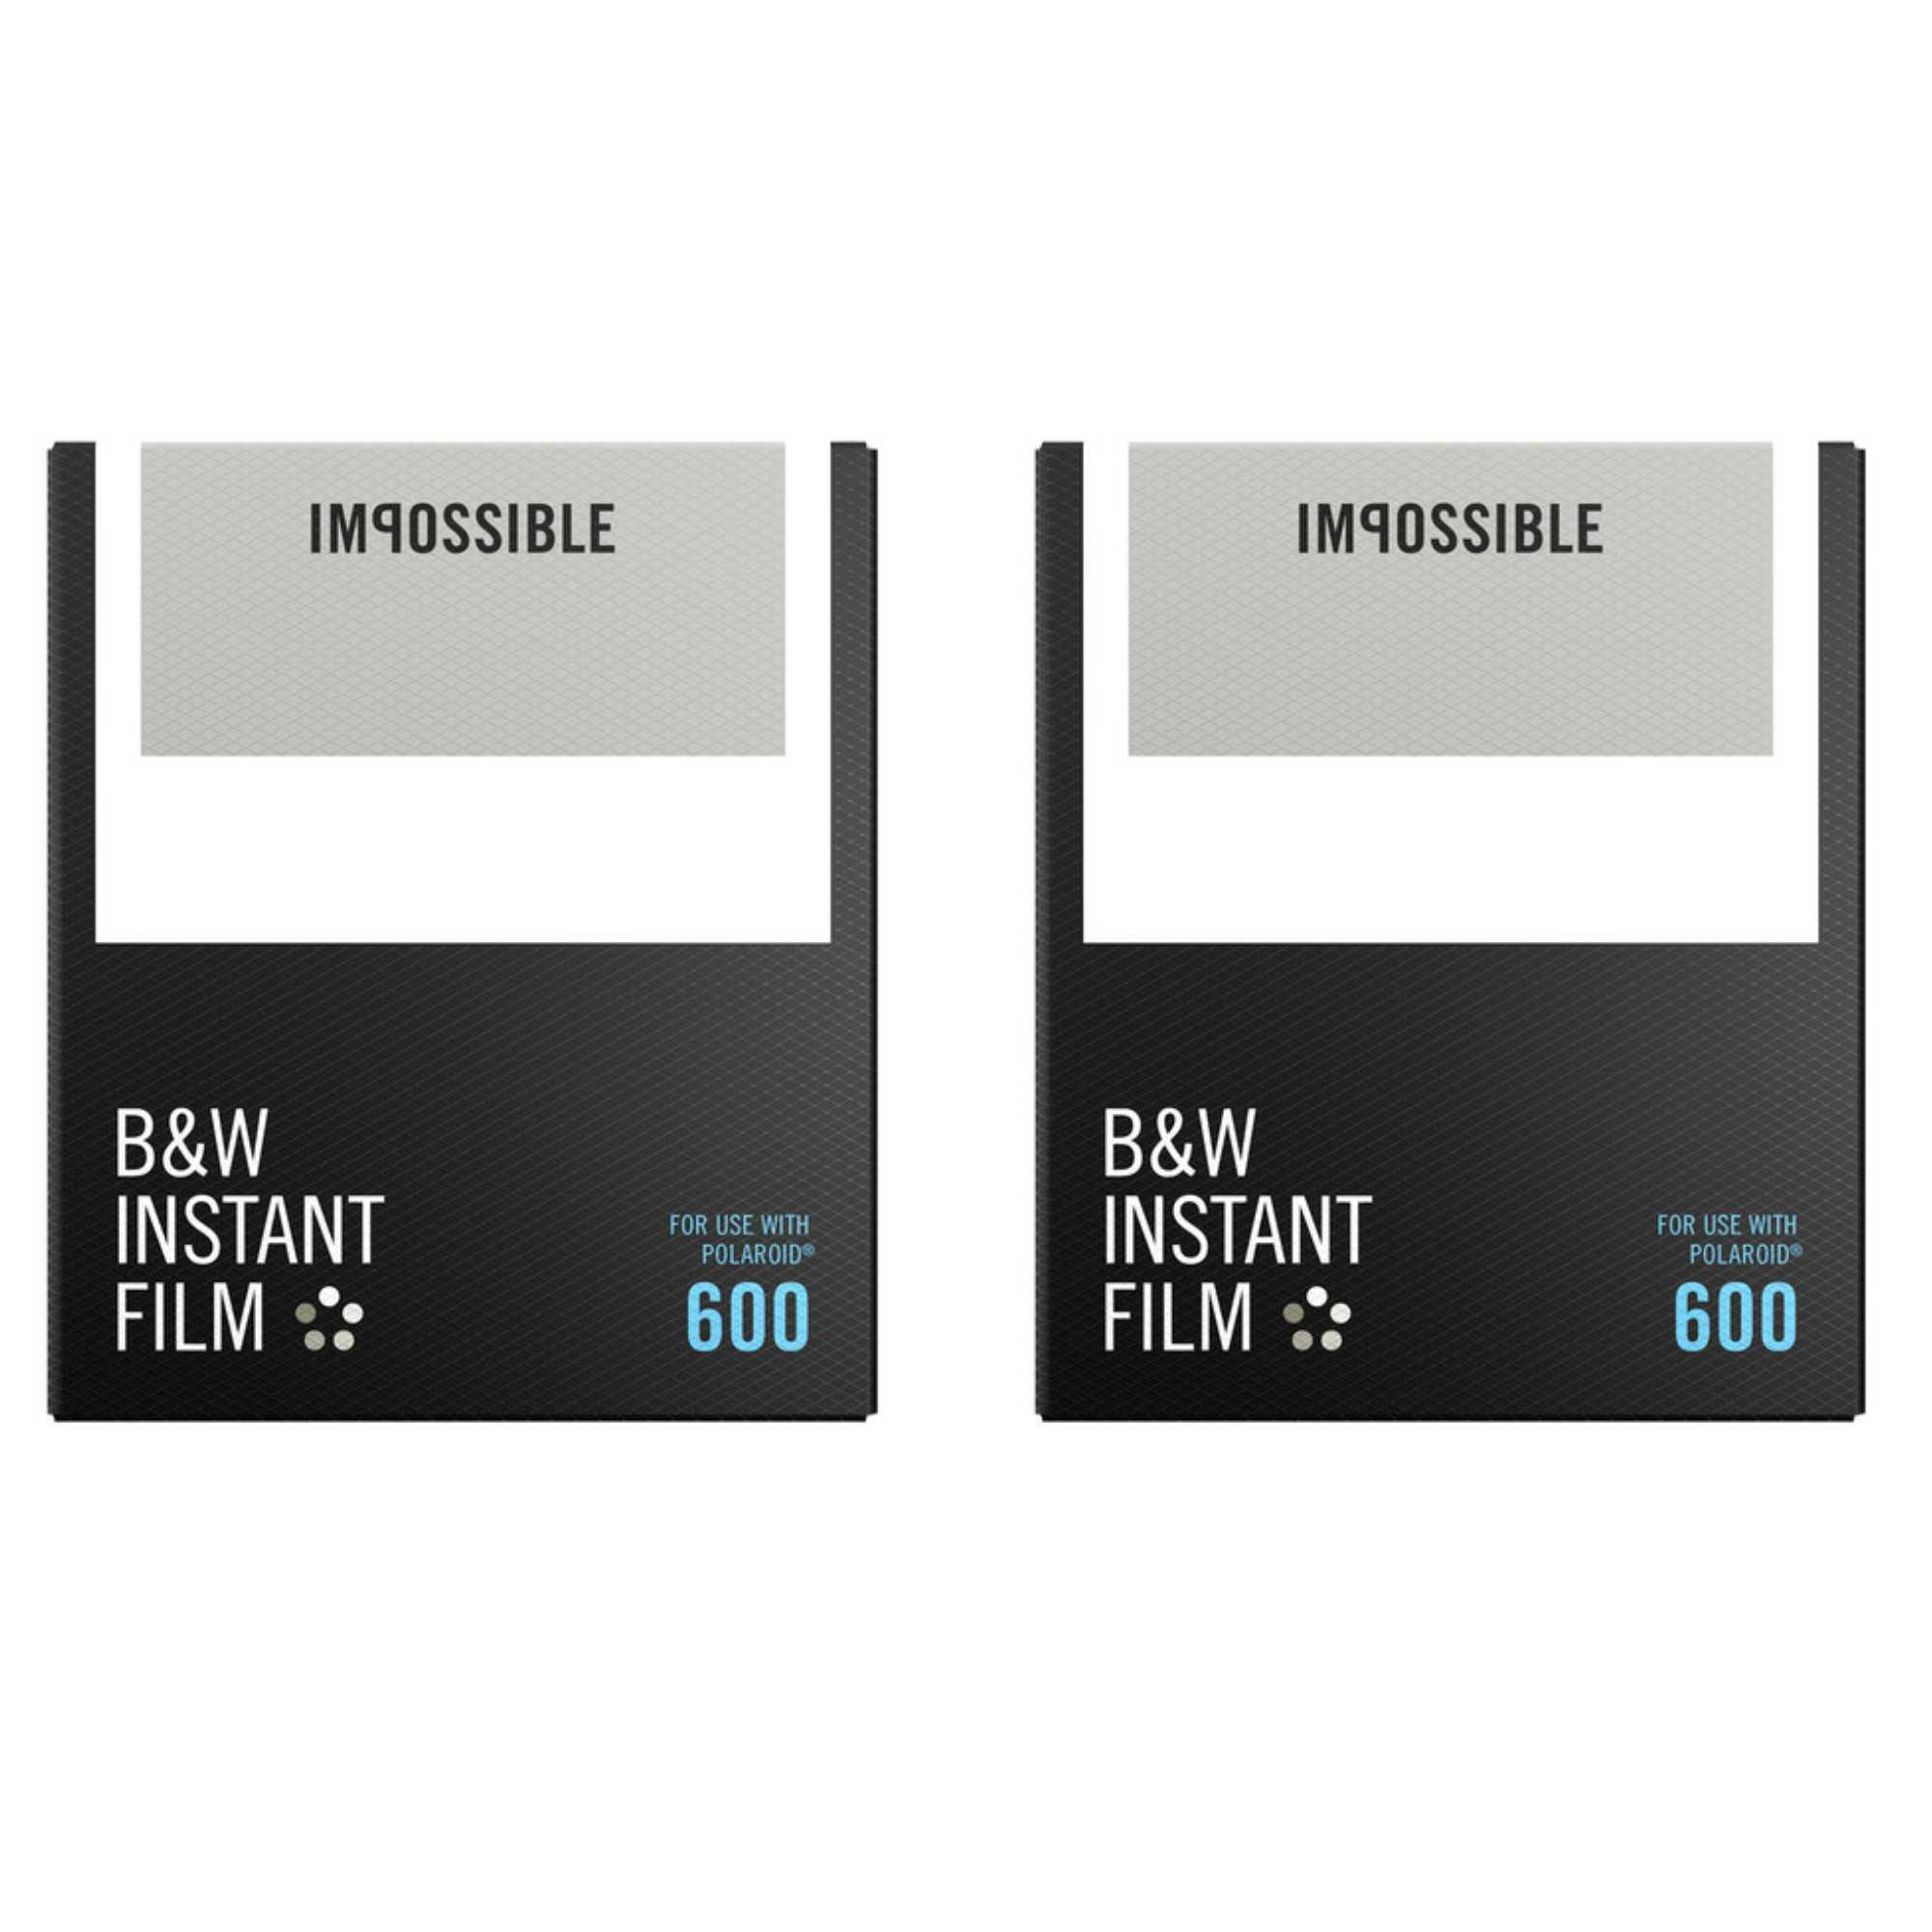 Impossible B&W Instant Film for 600 (White Frame/8 Exposures) 2-Pack